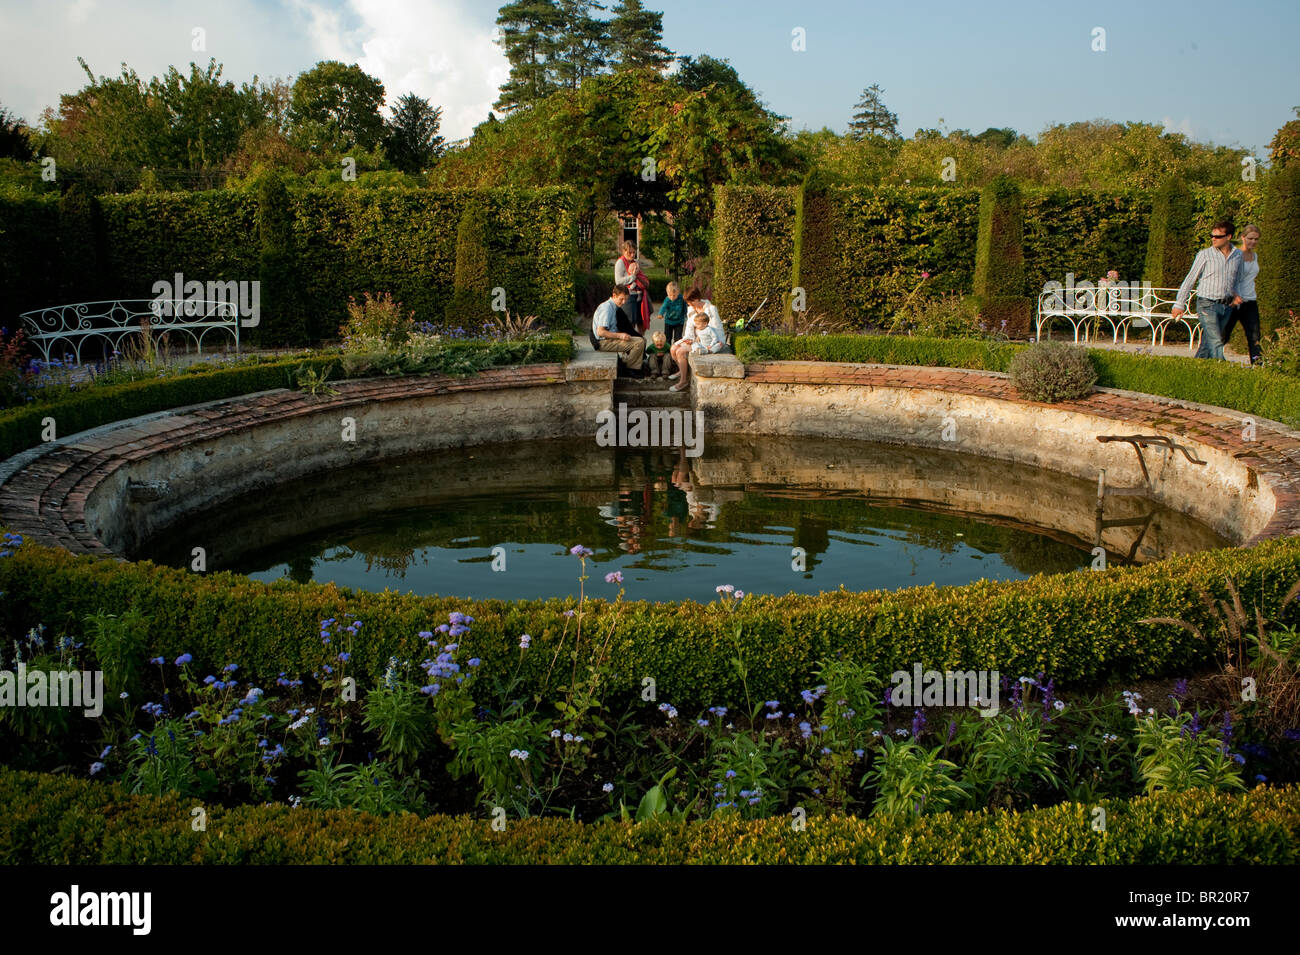 French Gardens General View Stock Photos & French Gardens General ...